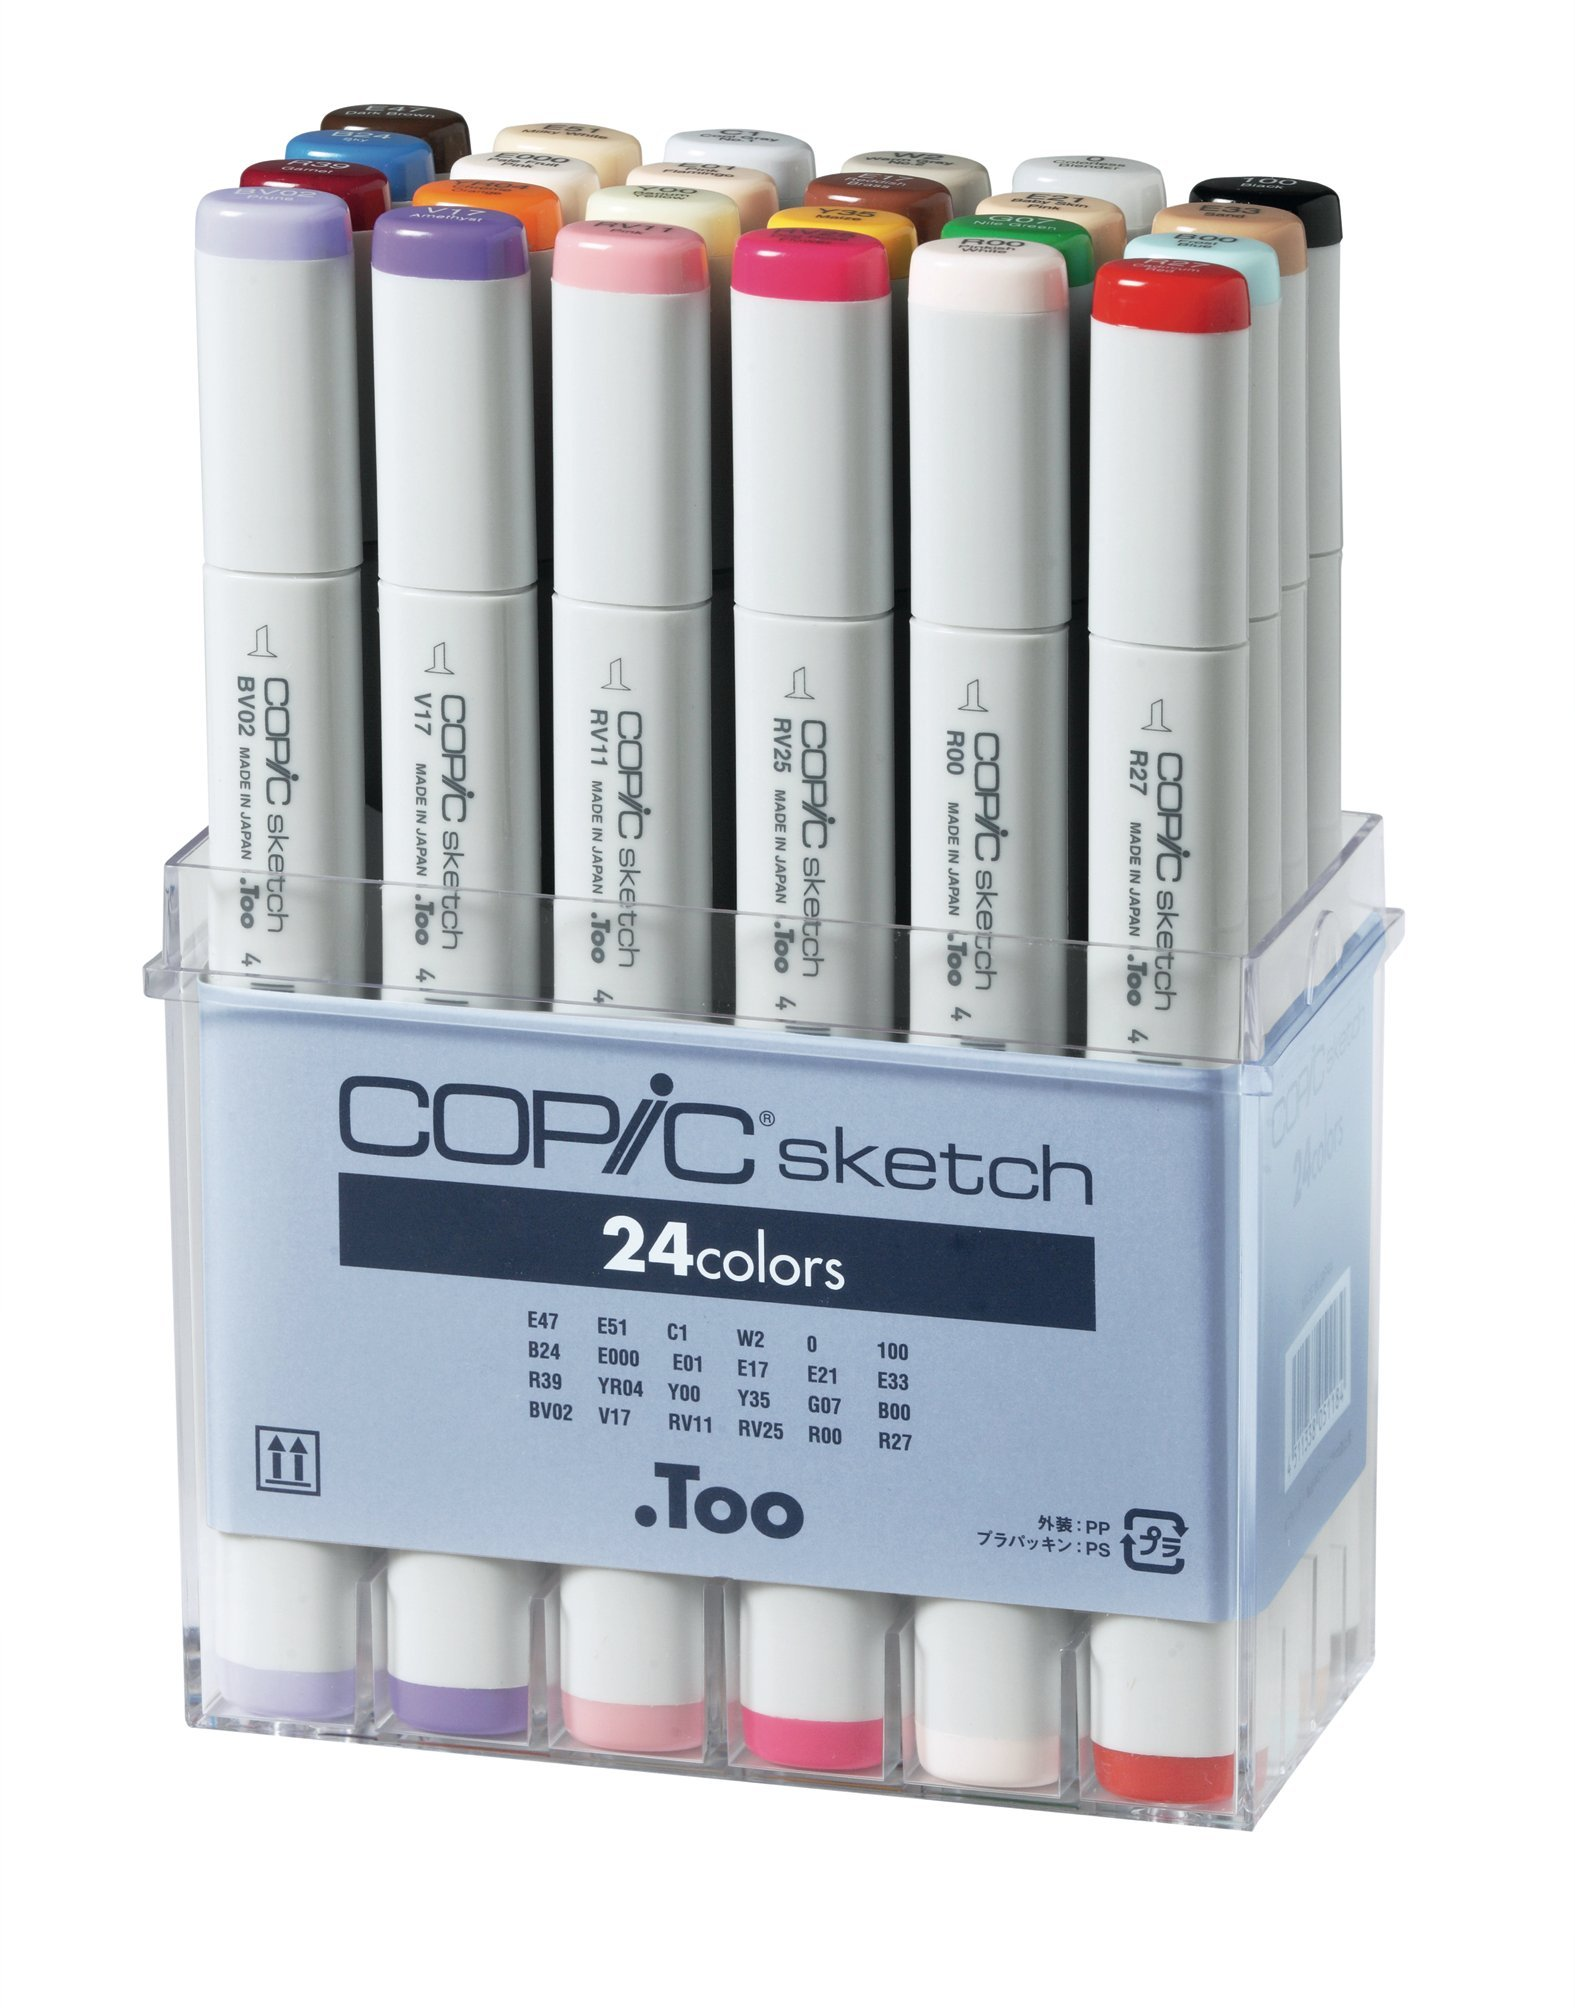 Copic Markers SB24 24-Piece Sketch Set, Basic